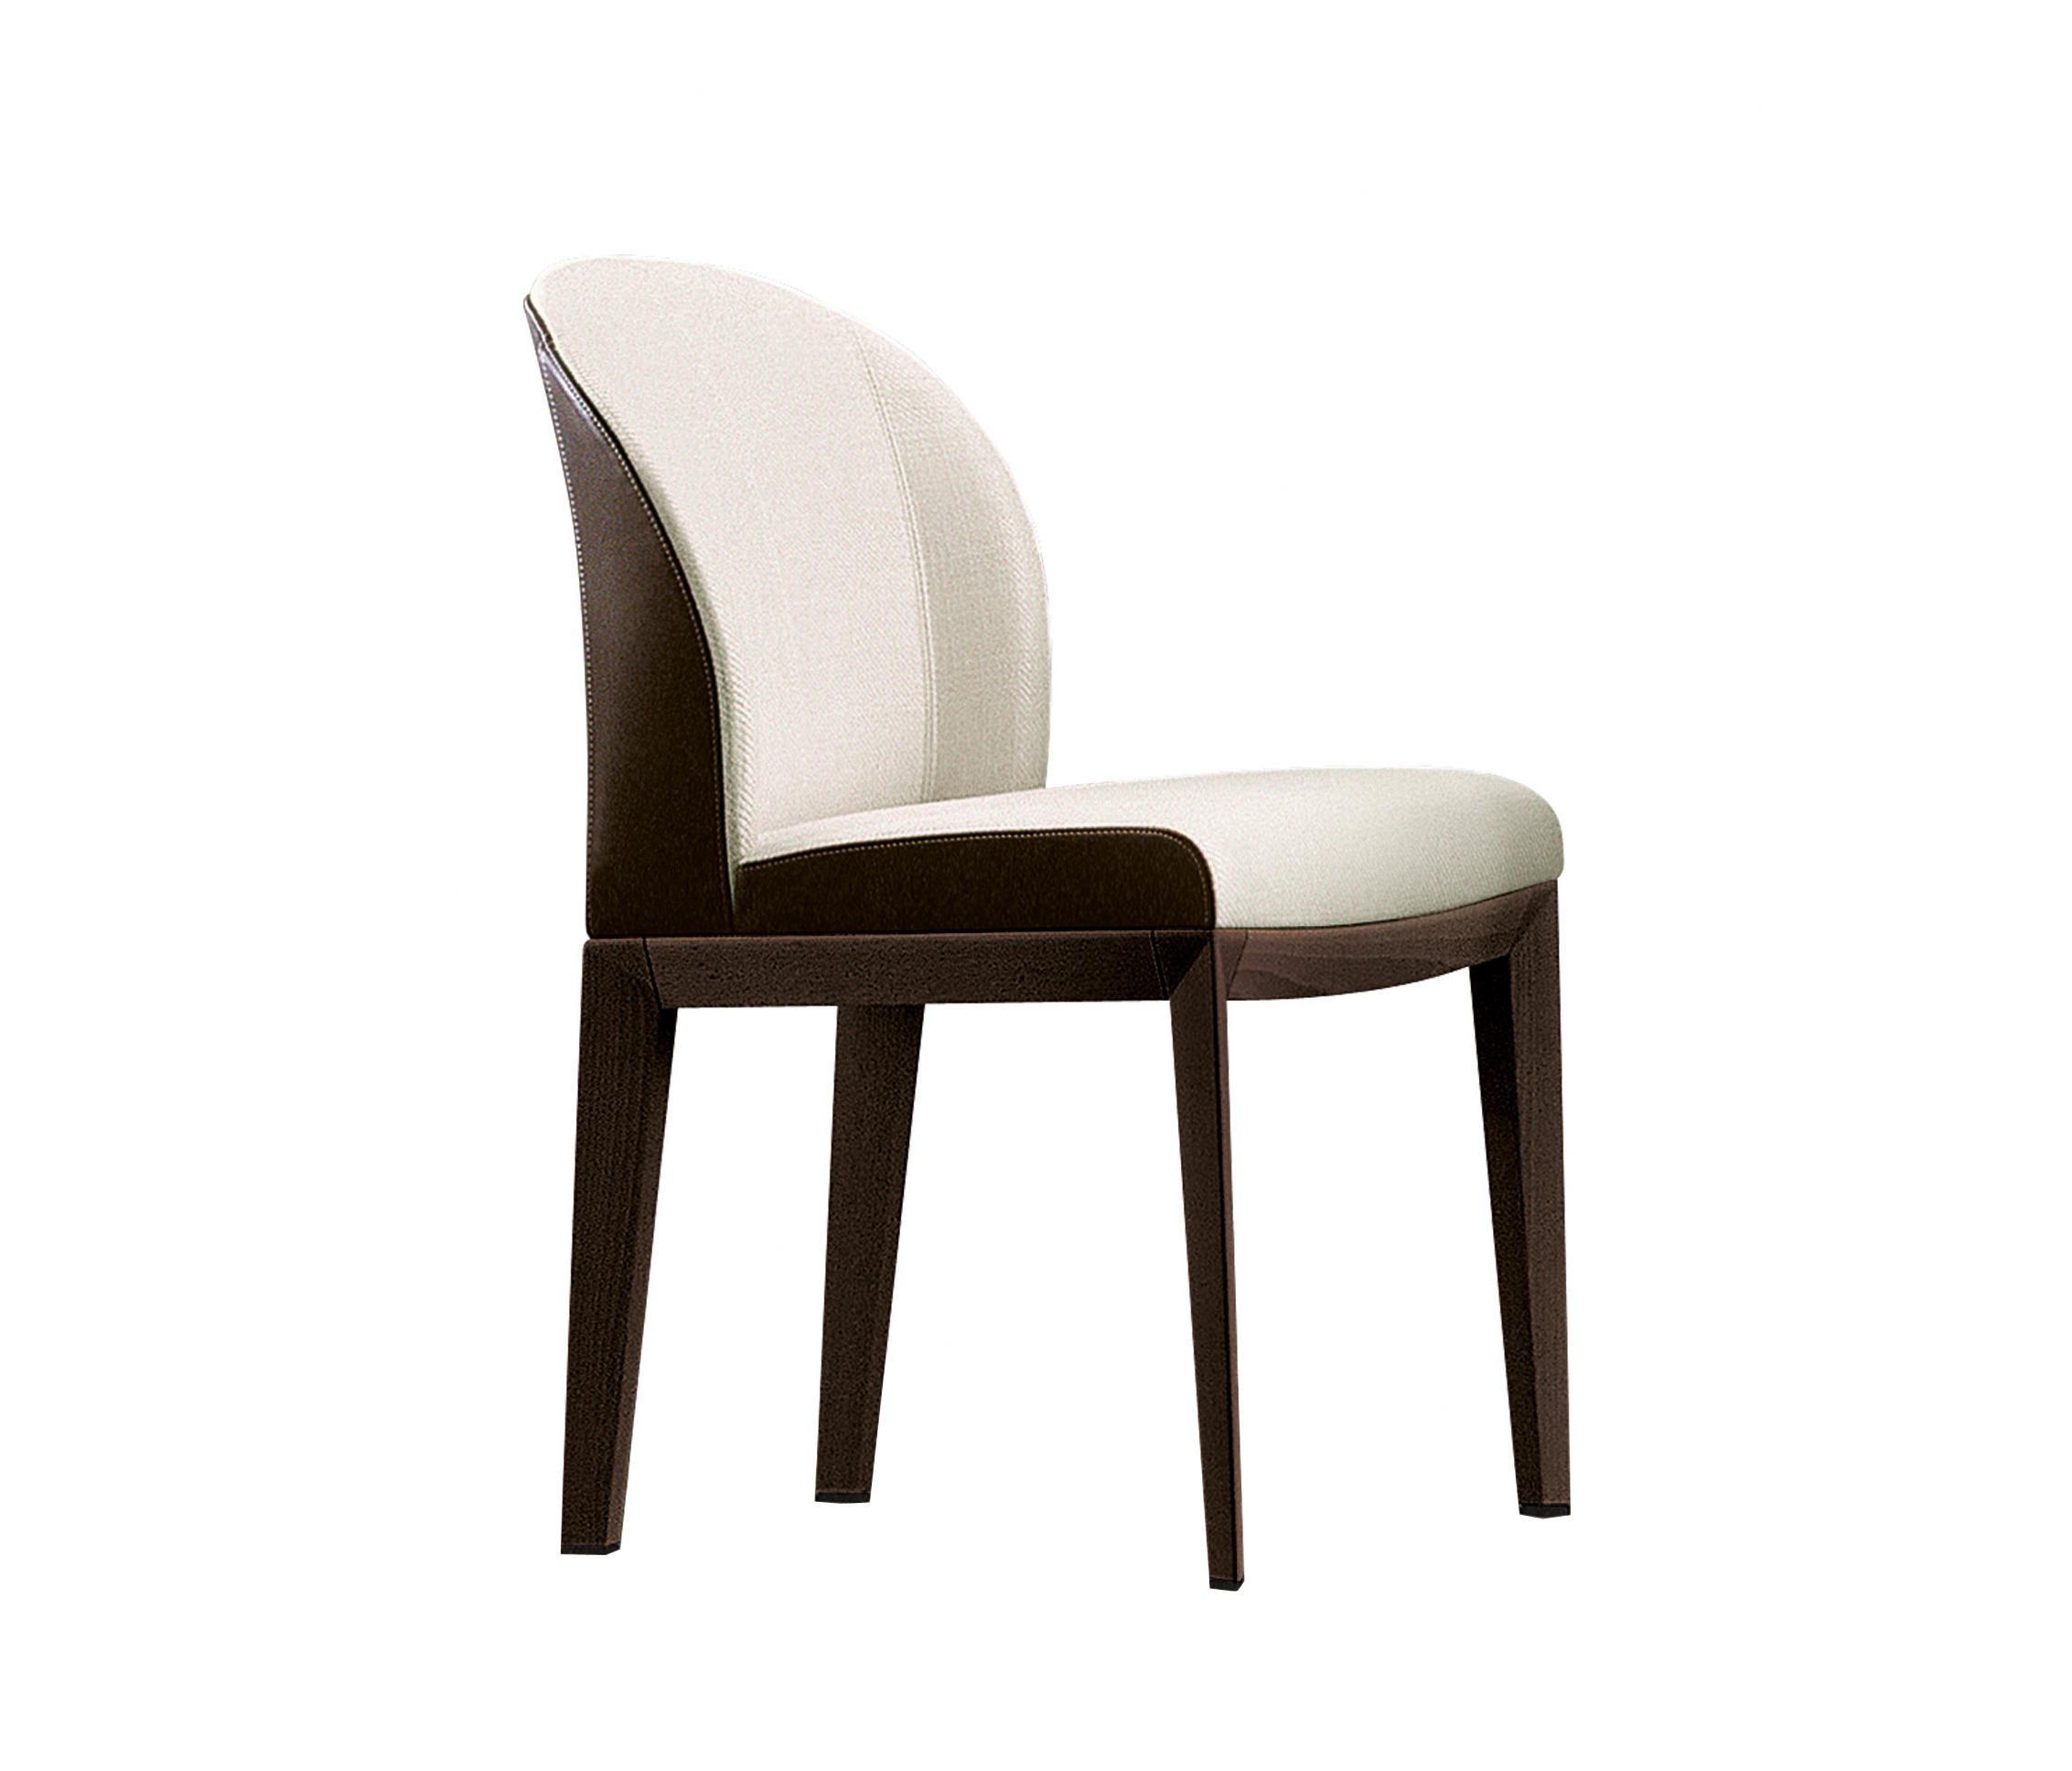 NORMAL CHAIR - Chairs From Giorgetti